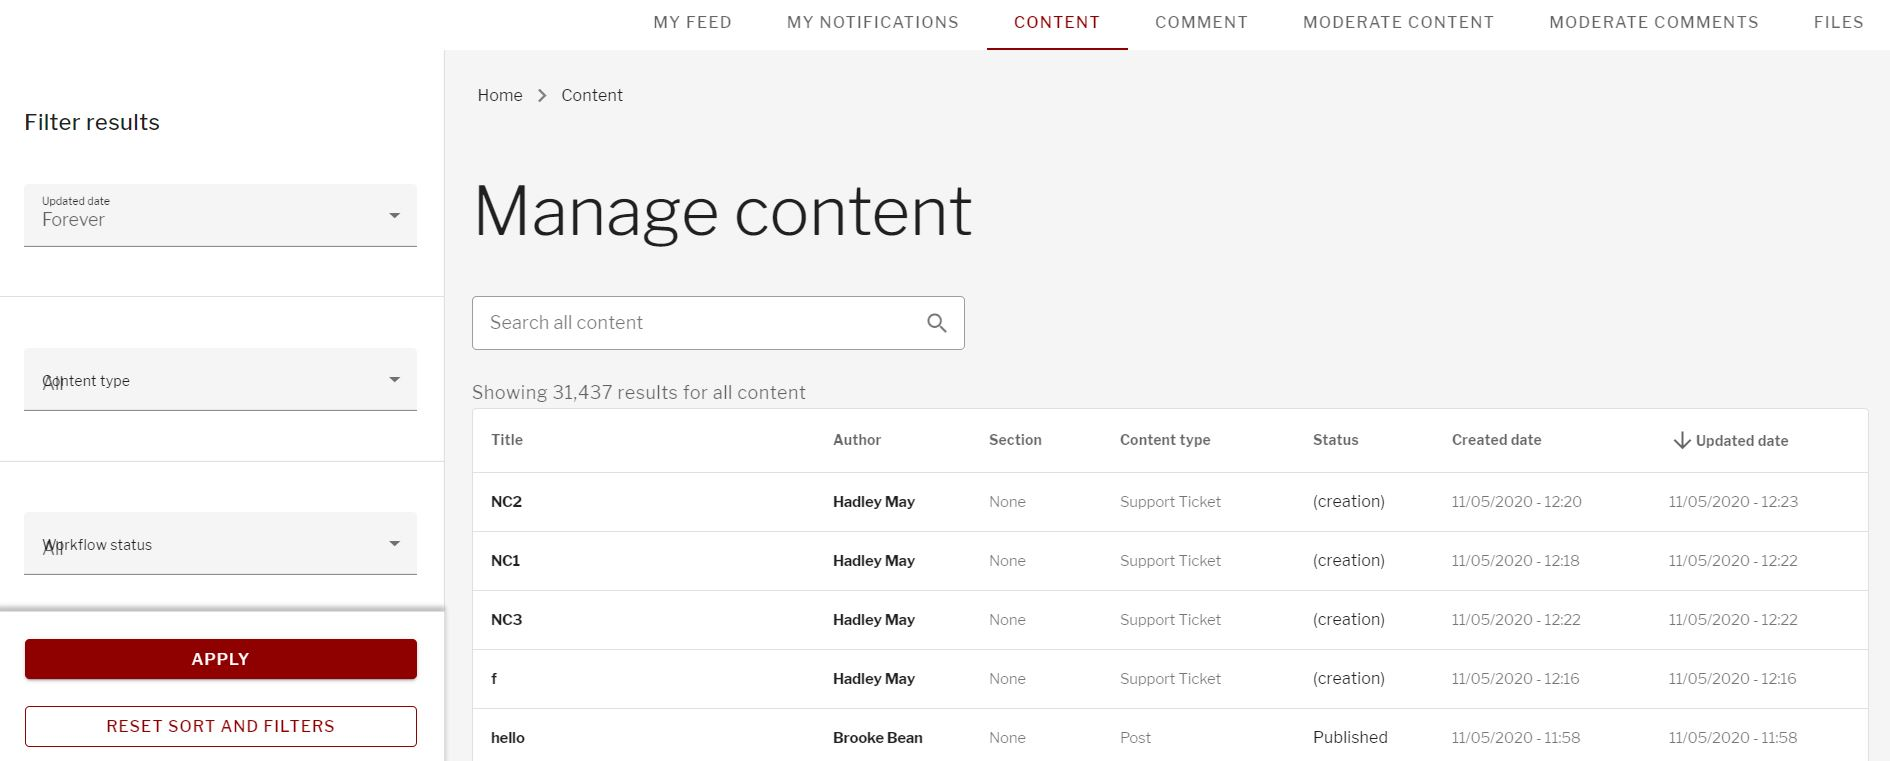 Manage content tabs of  content, moderate content, comments, moderate comments, and files